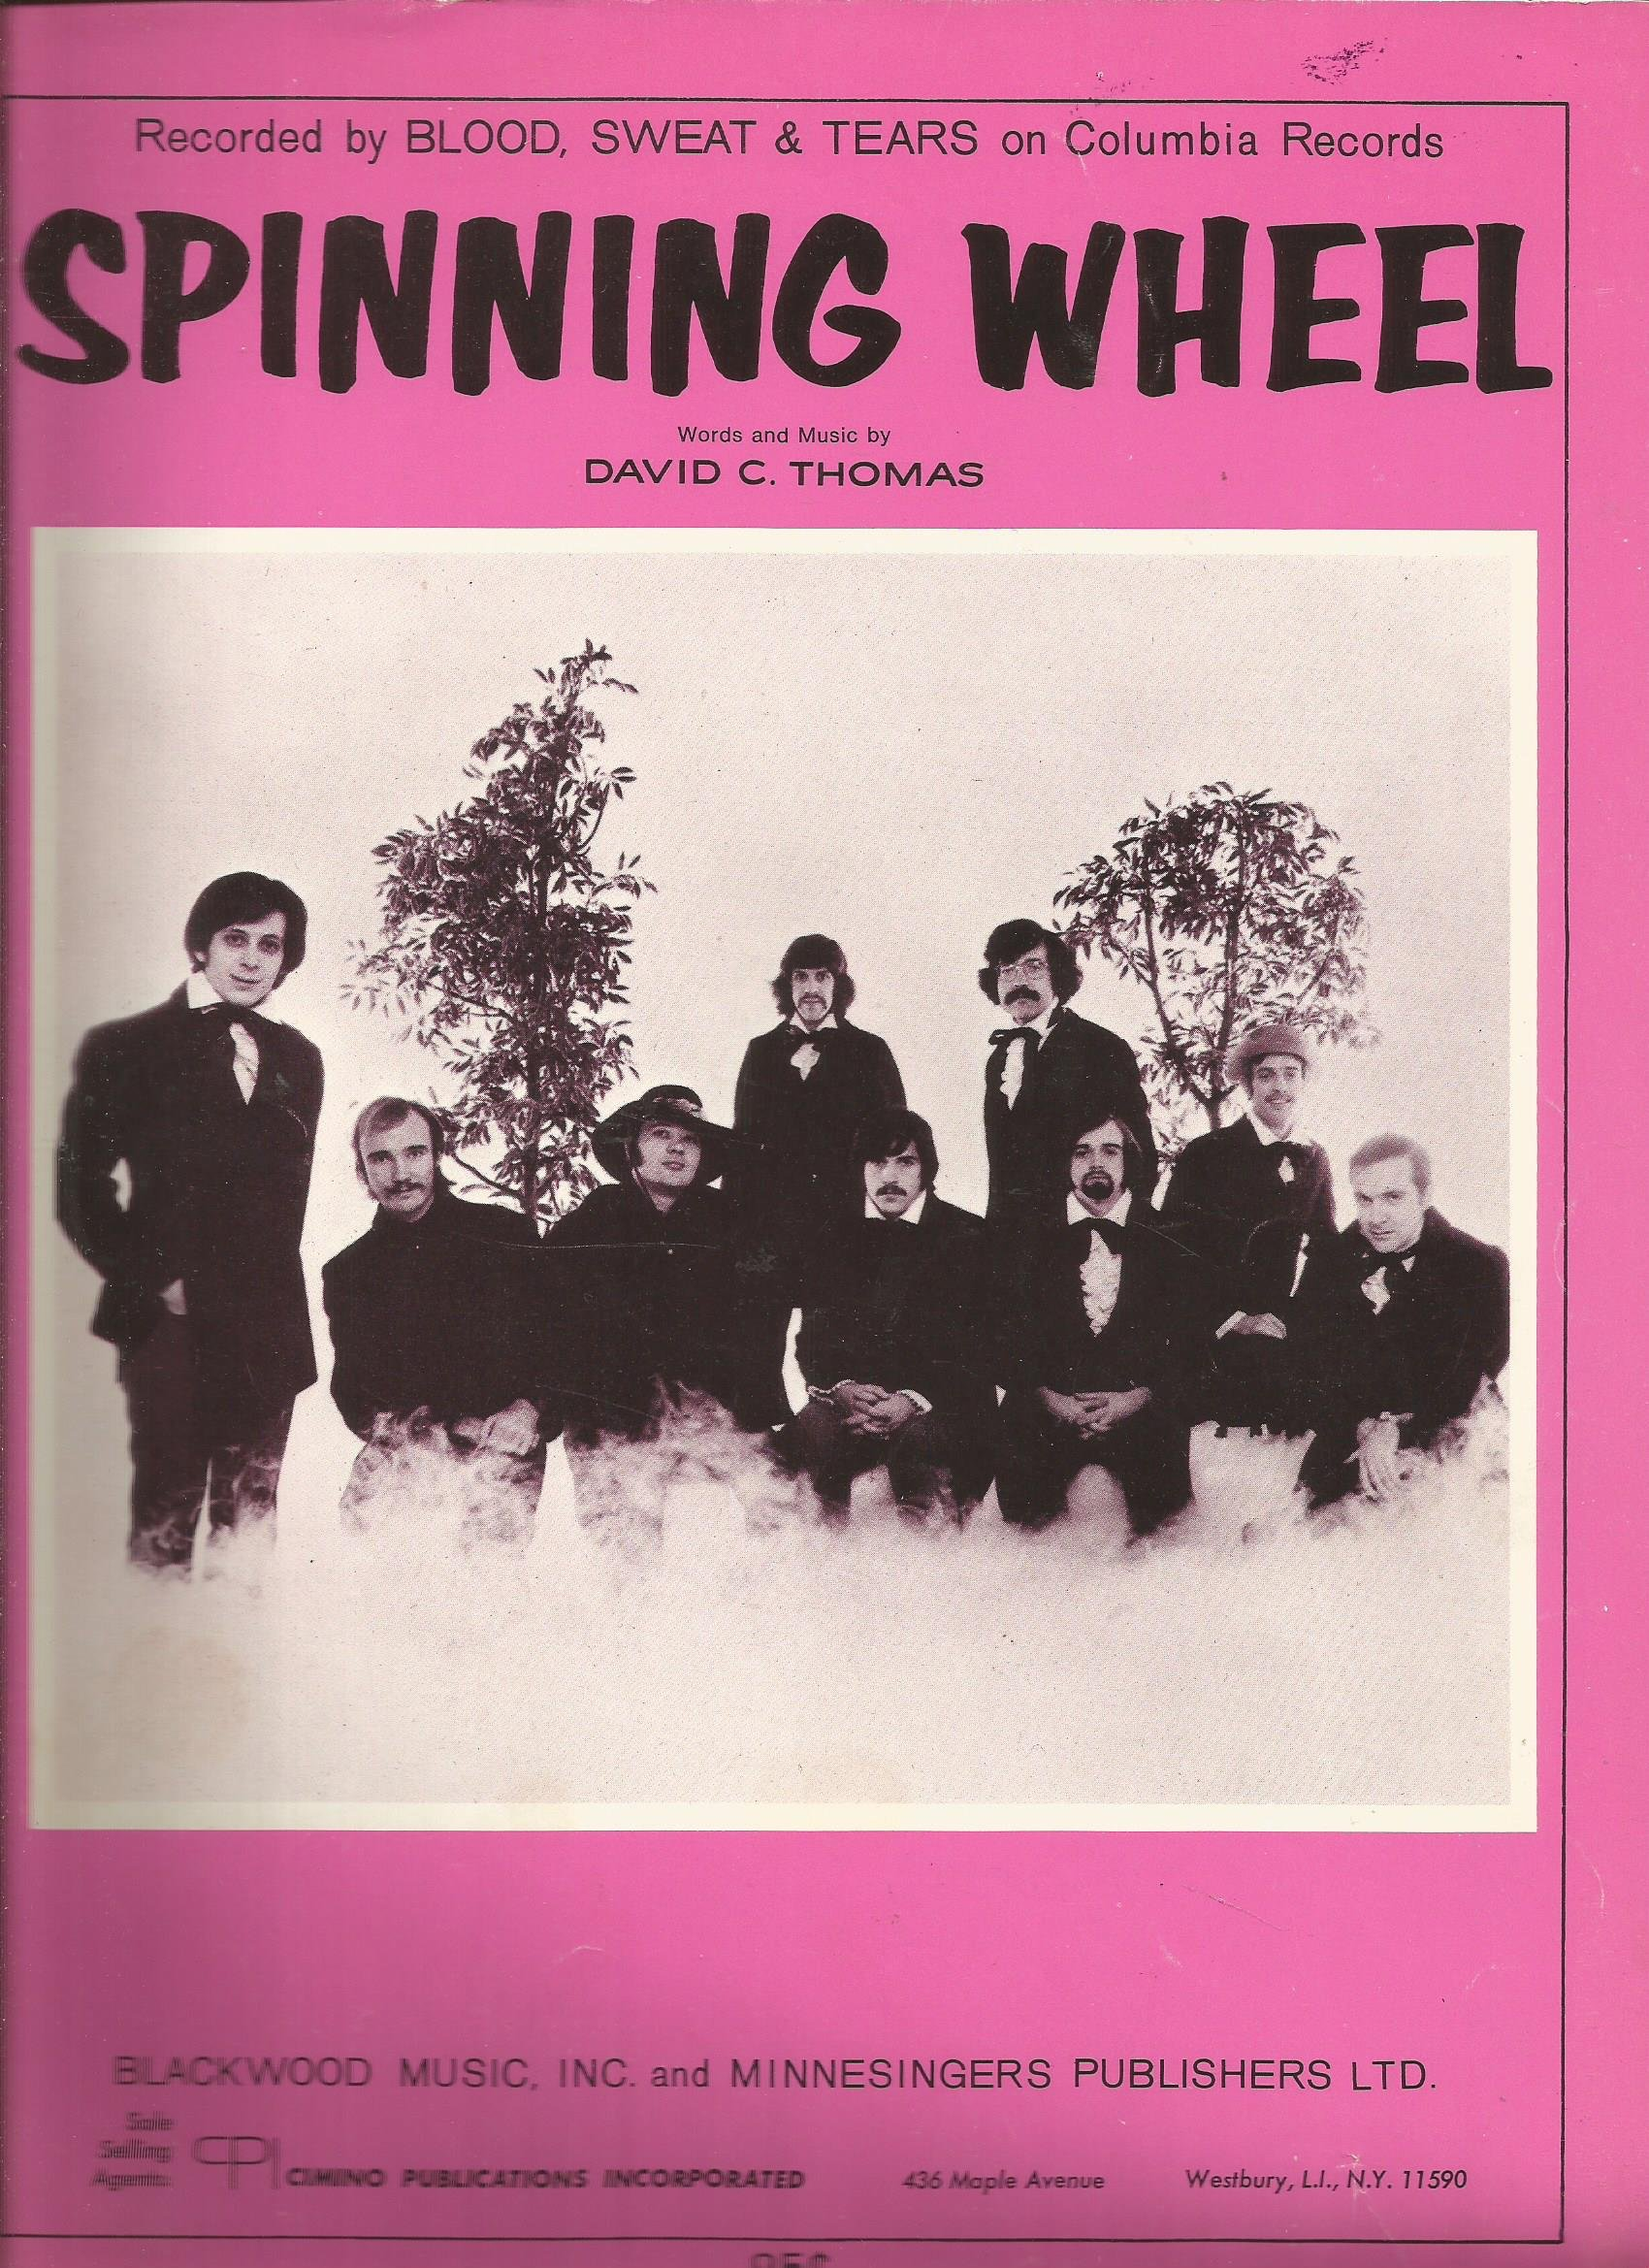 SPINNING WHEEL RECORDED BY BLOOD, SWEAT & TEARS ON COLUMBIA RECORDS